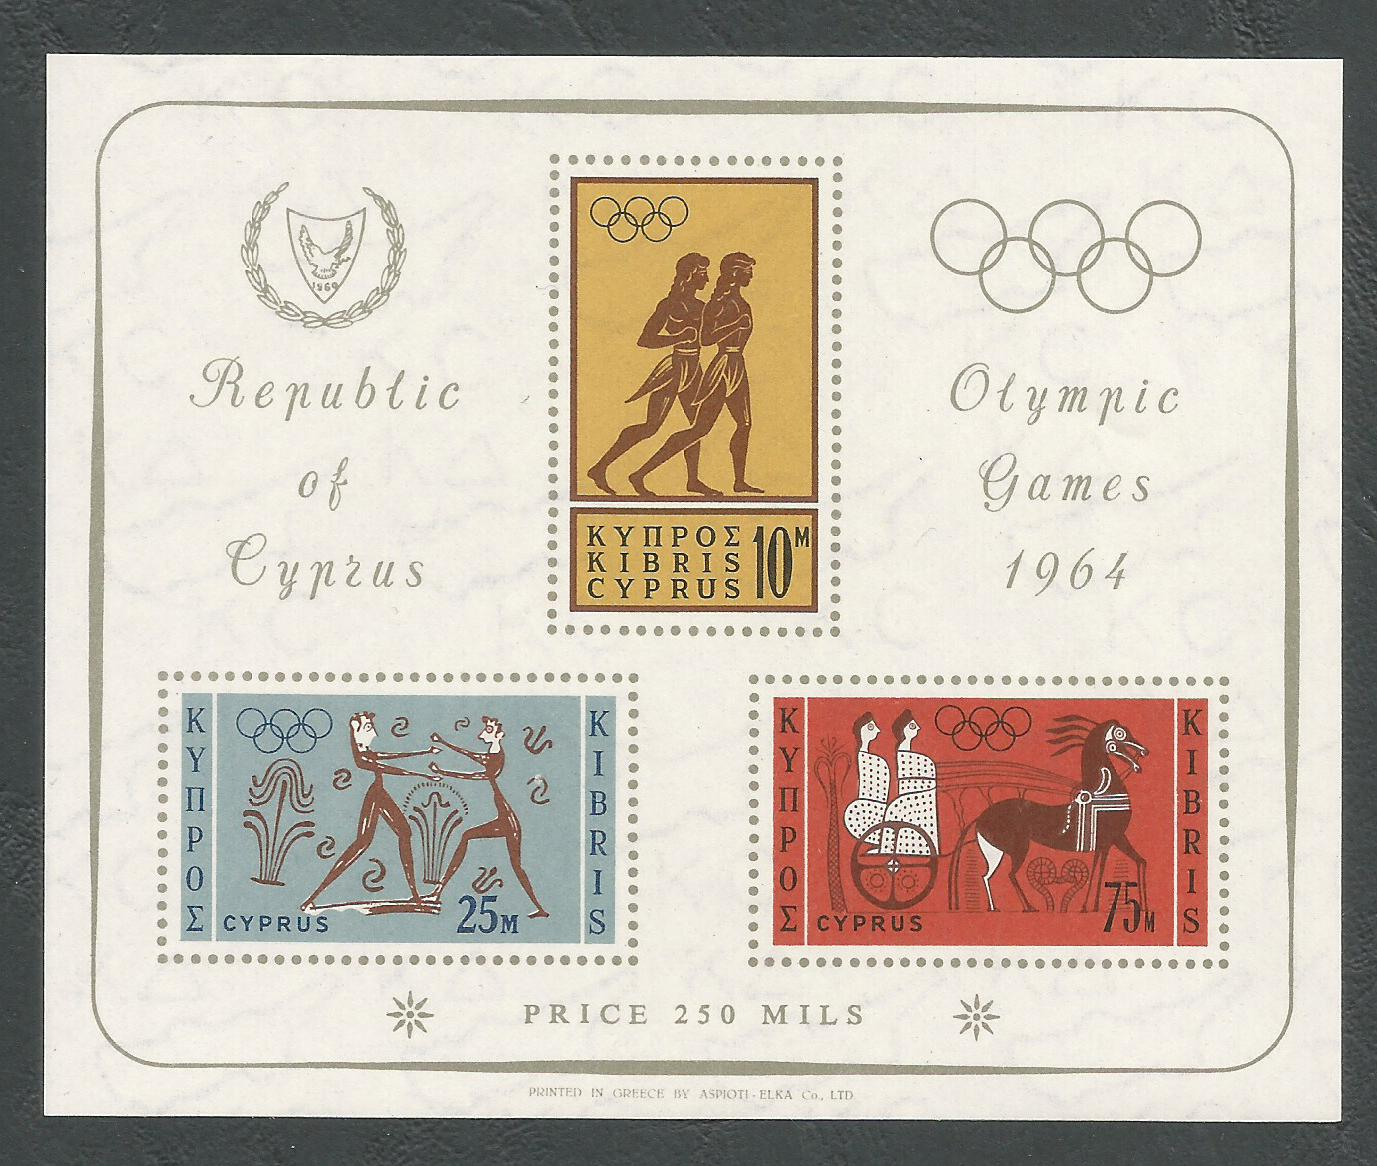 Cyprus Stamps SG 248a MS 1964 Tokyo Olympic games - Type 1 Normal watermark